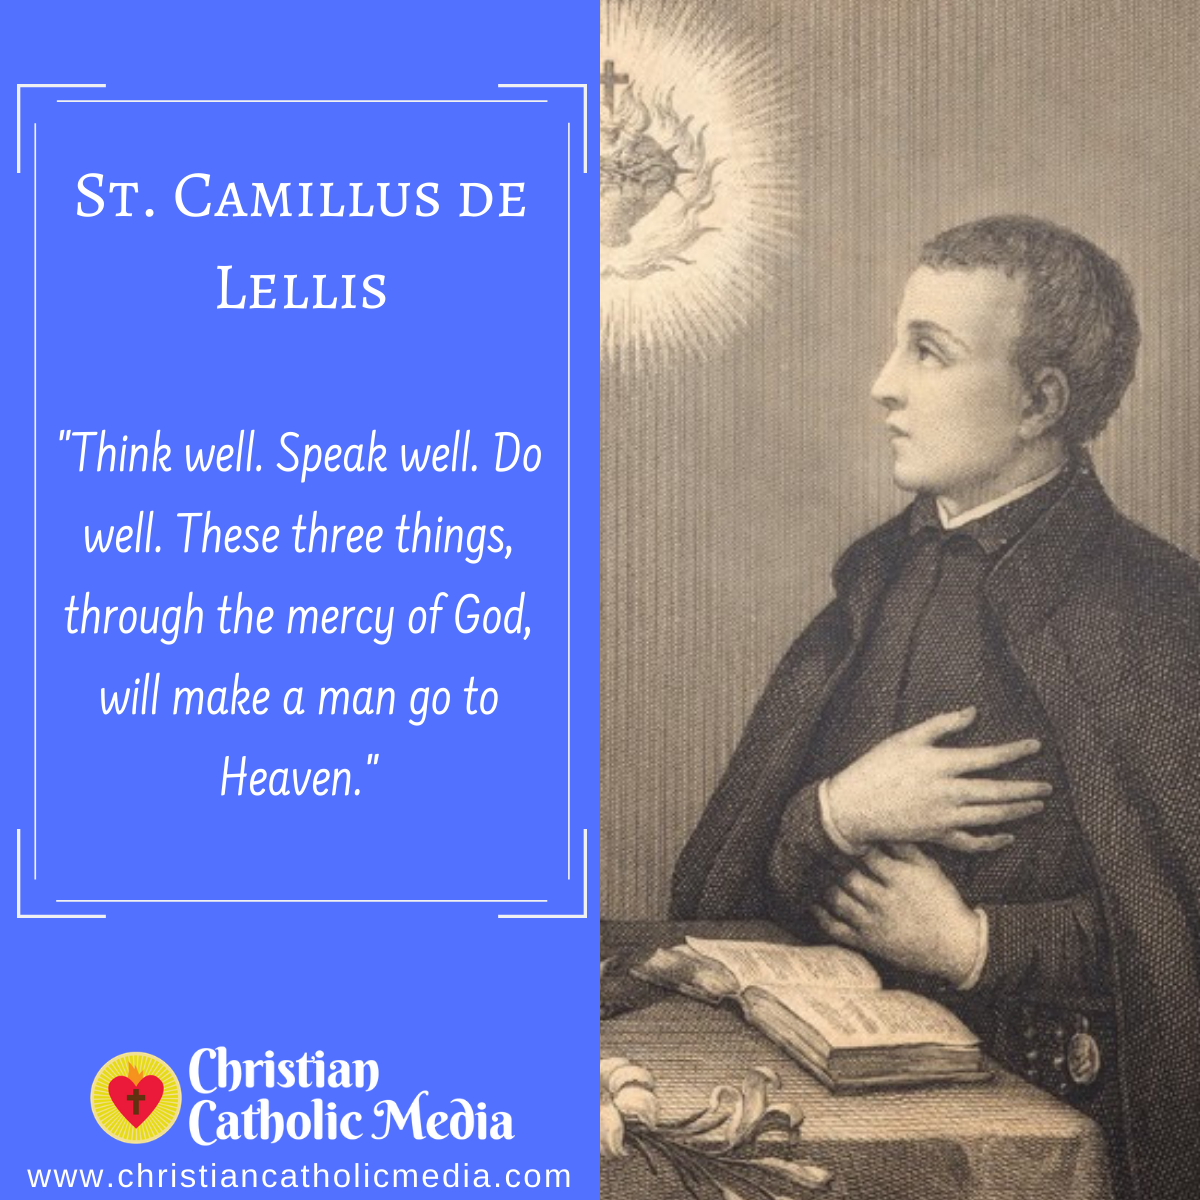 St. Camillus de Lellis - Saturday July 18, 2020